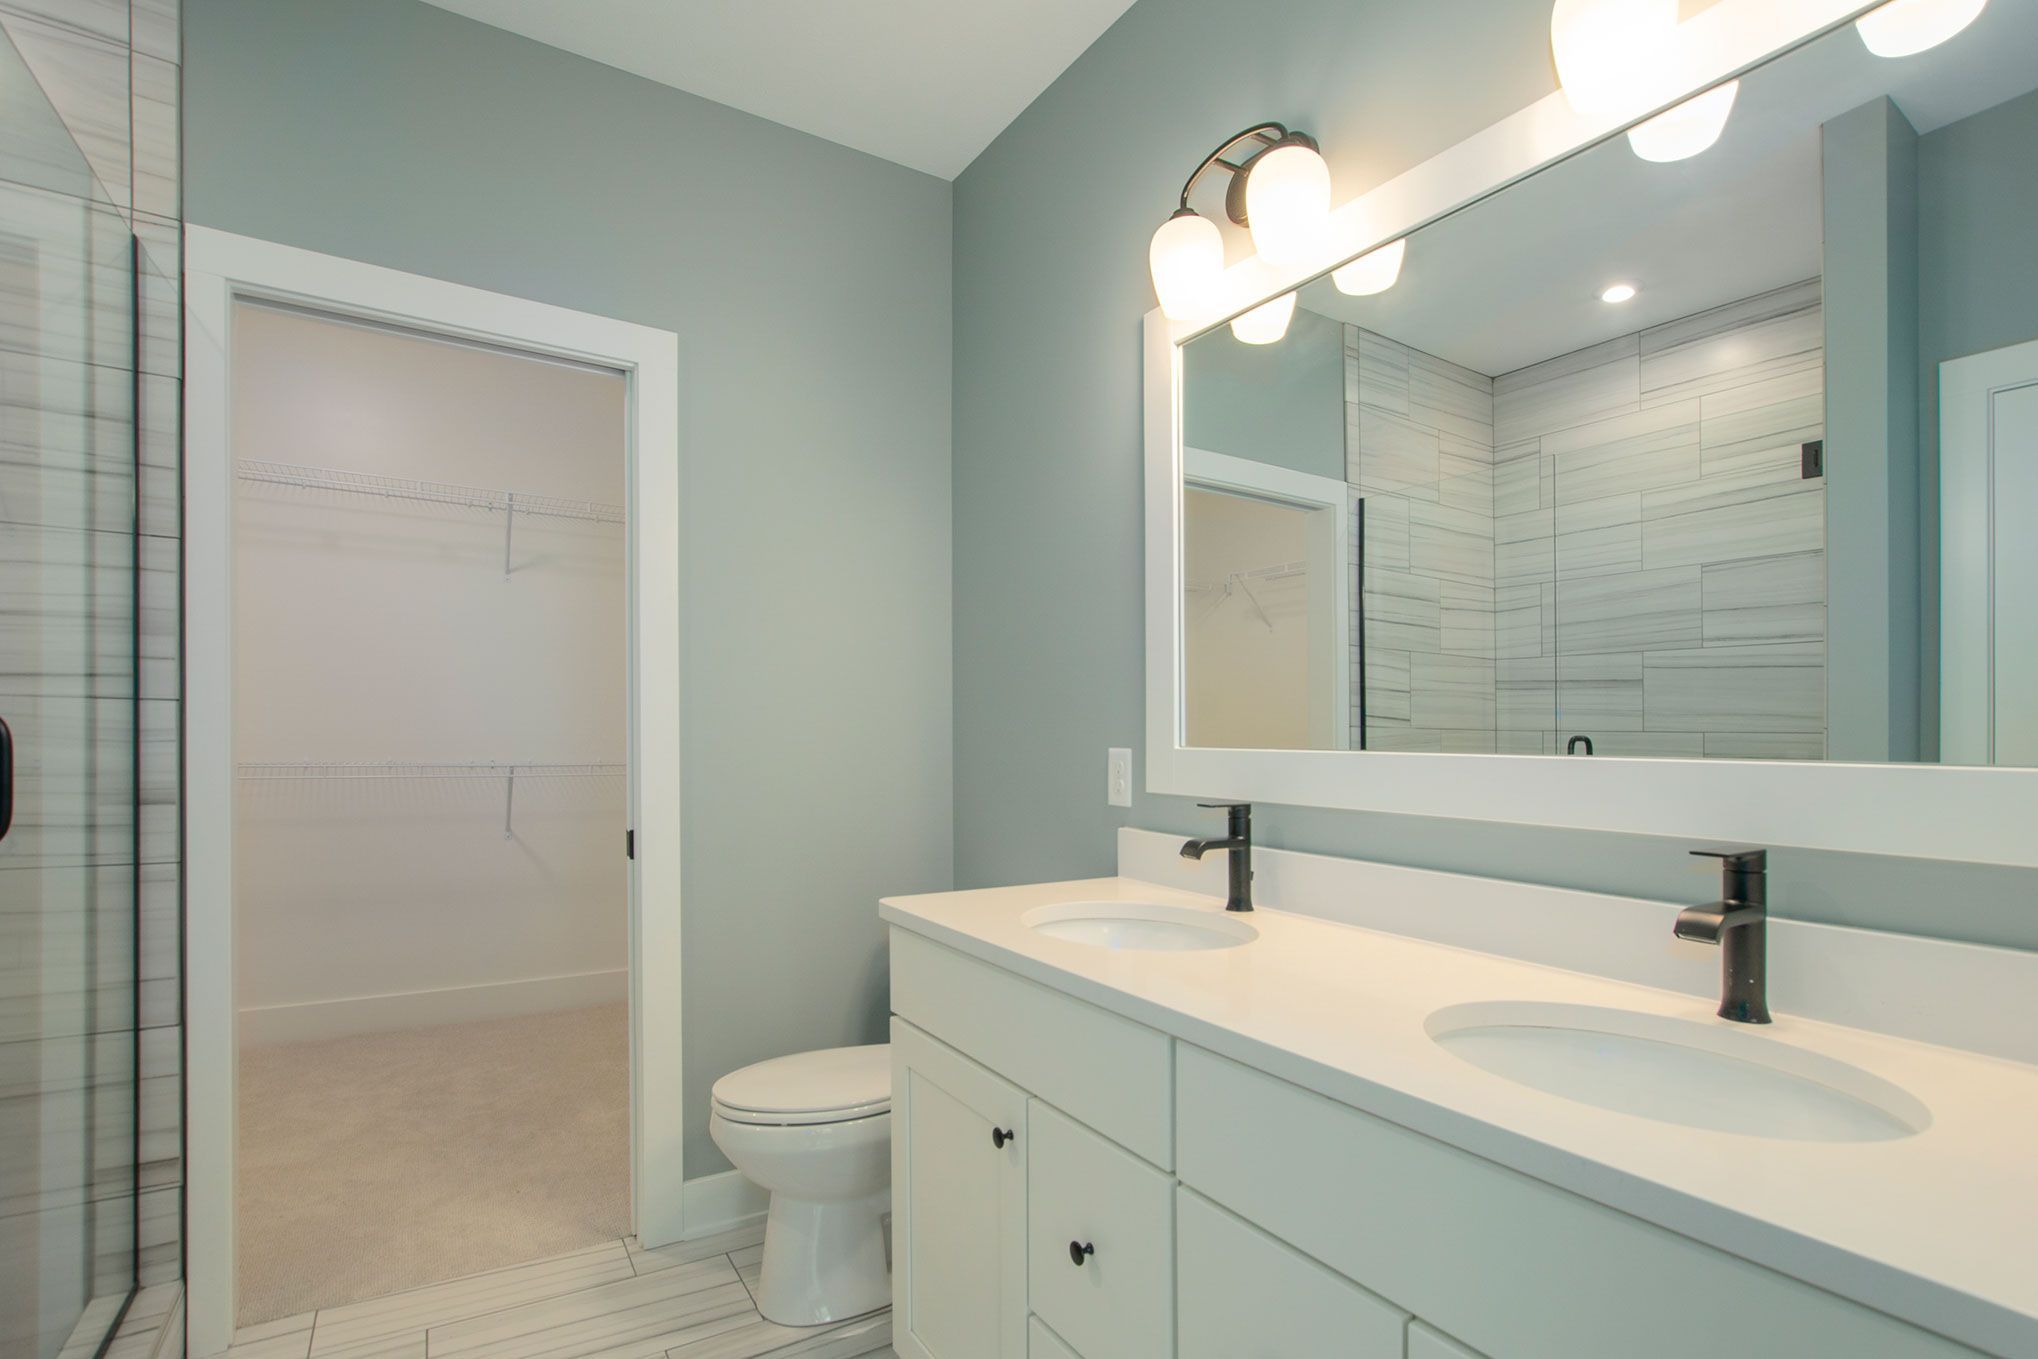 Bathroom featured in The Pentwater II By Eastbrook Homes Inc. in Grand Rapids, MI